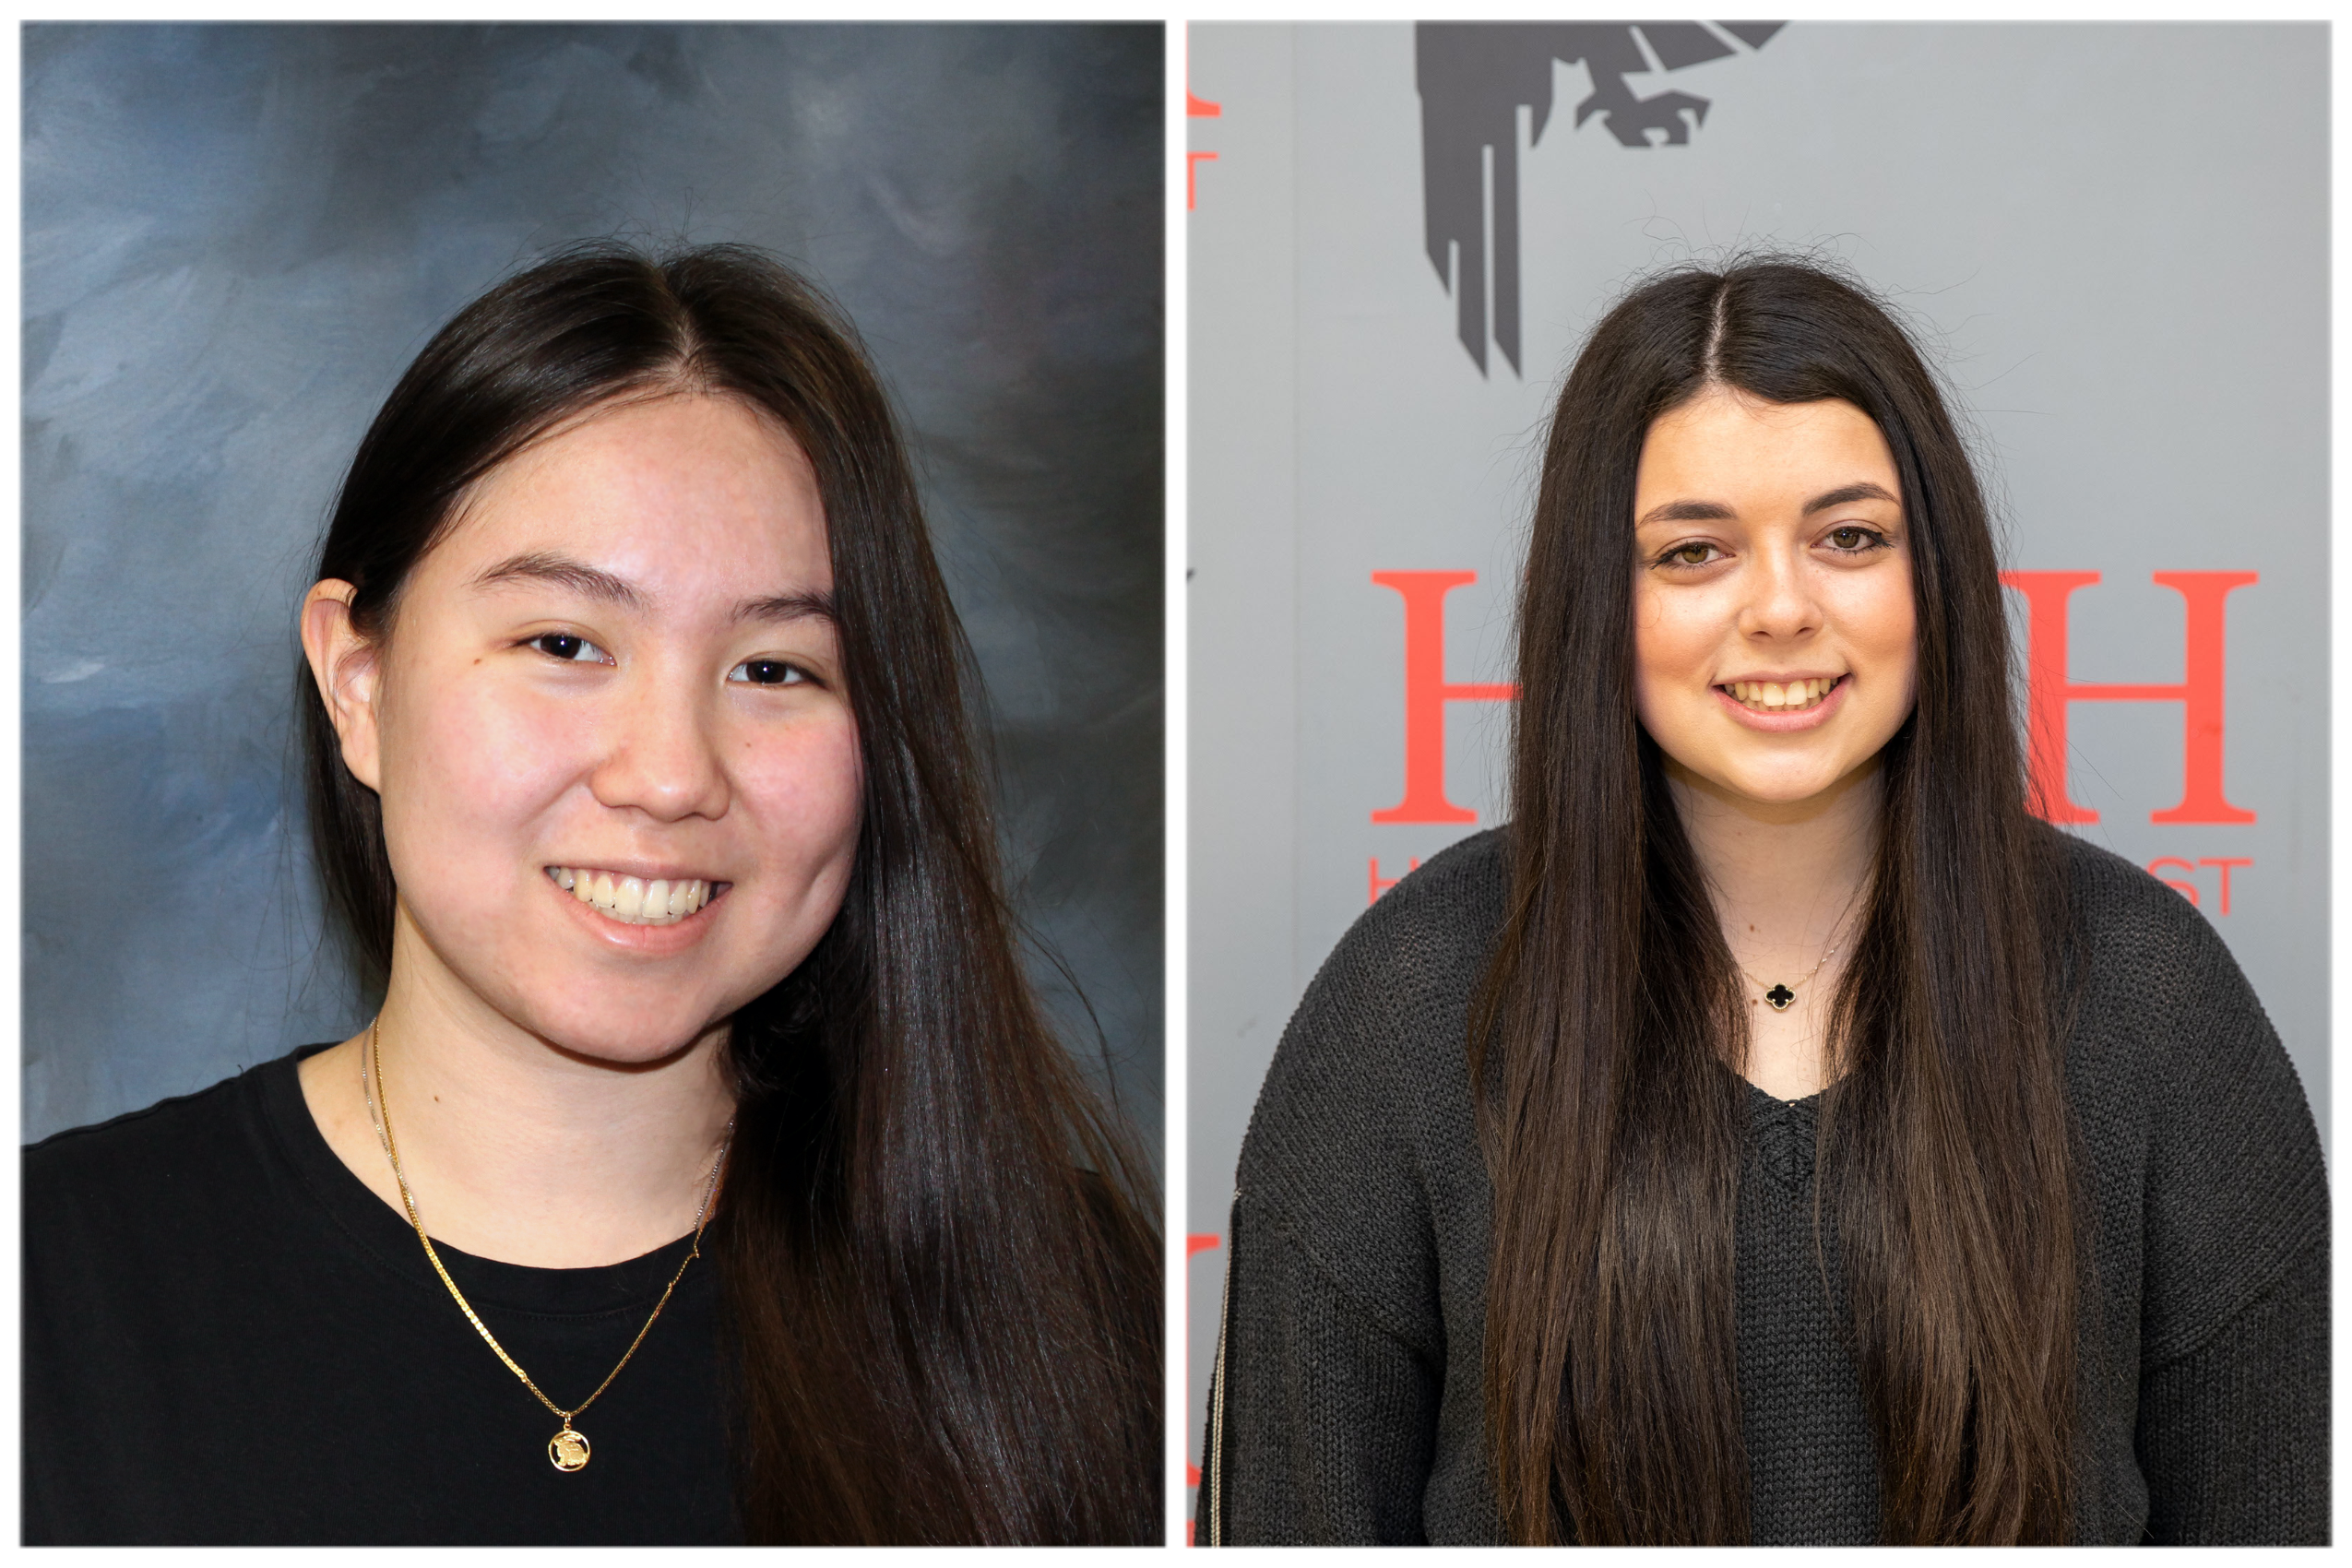 Hills East & West Valedictorians Honored By SCSSA